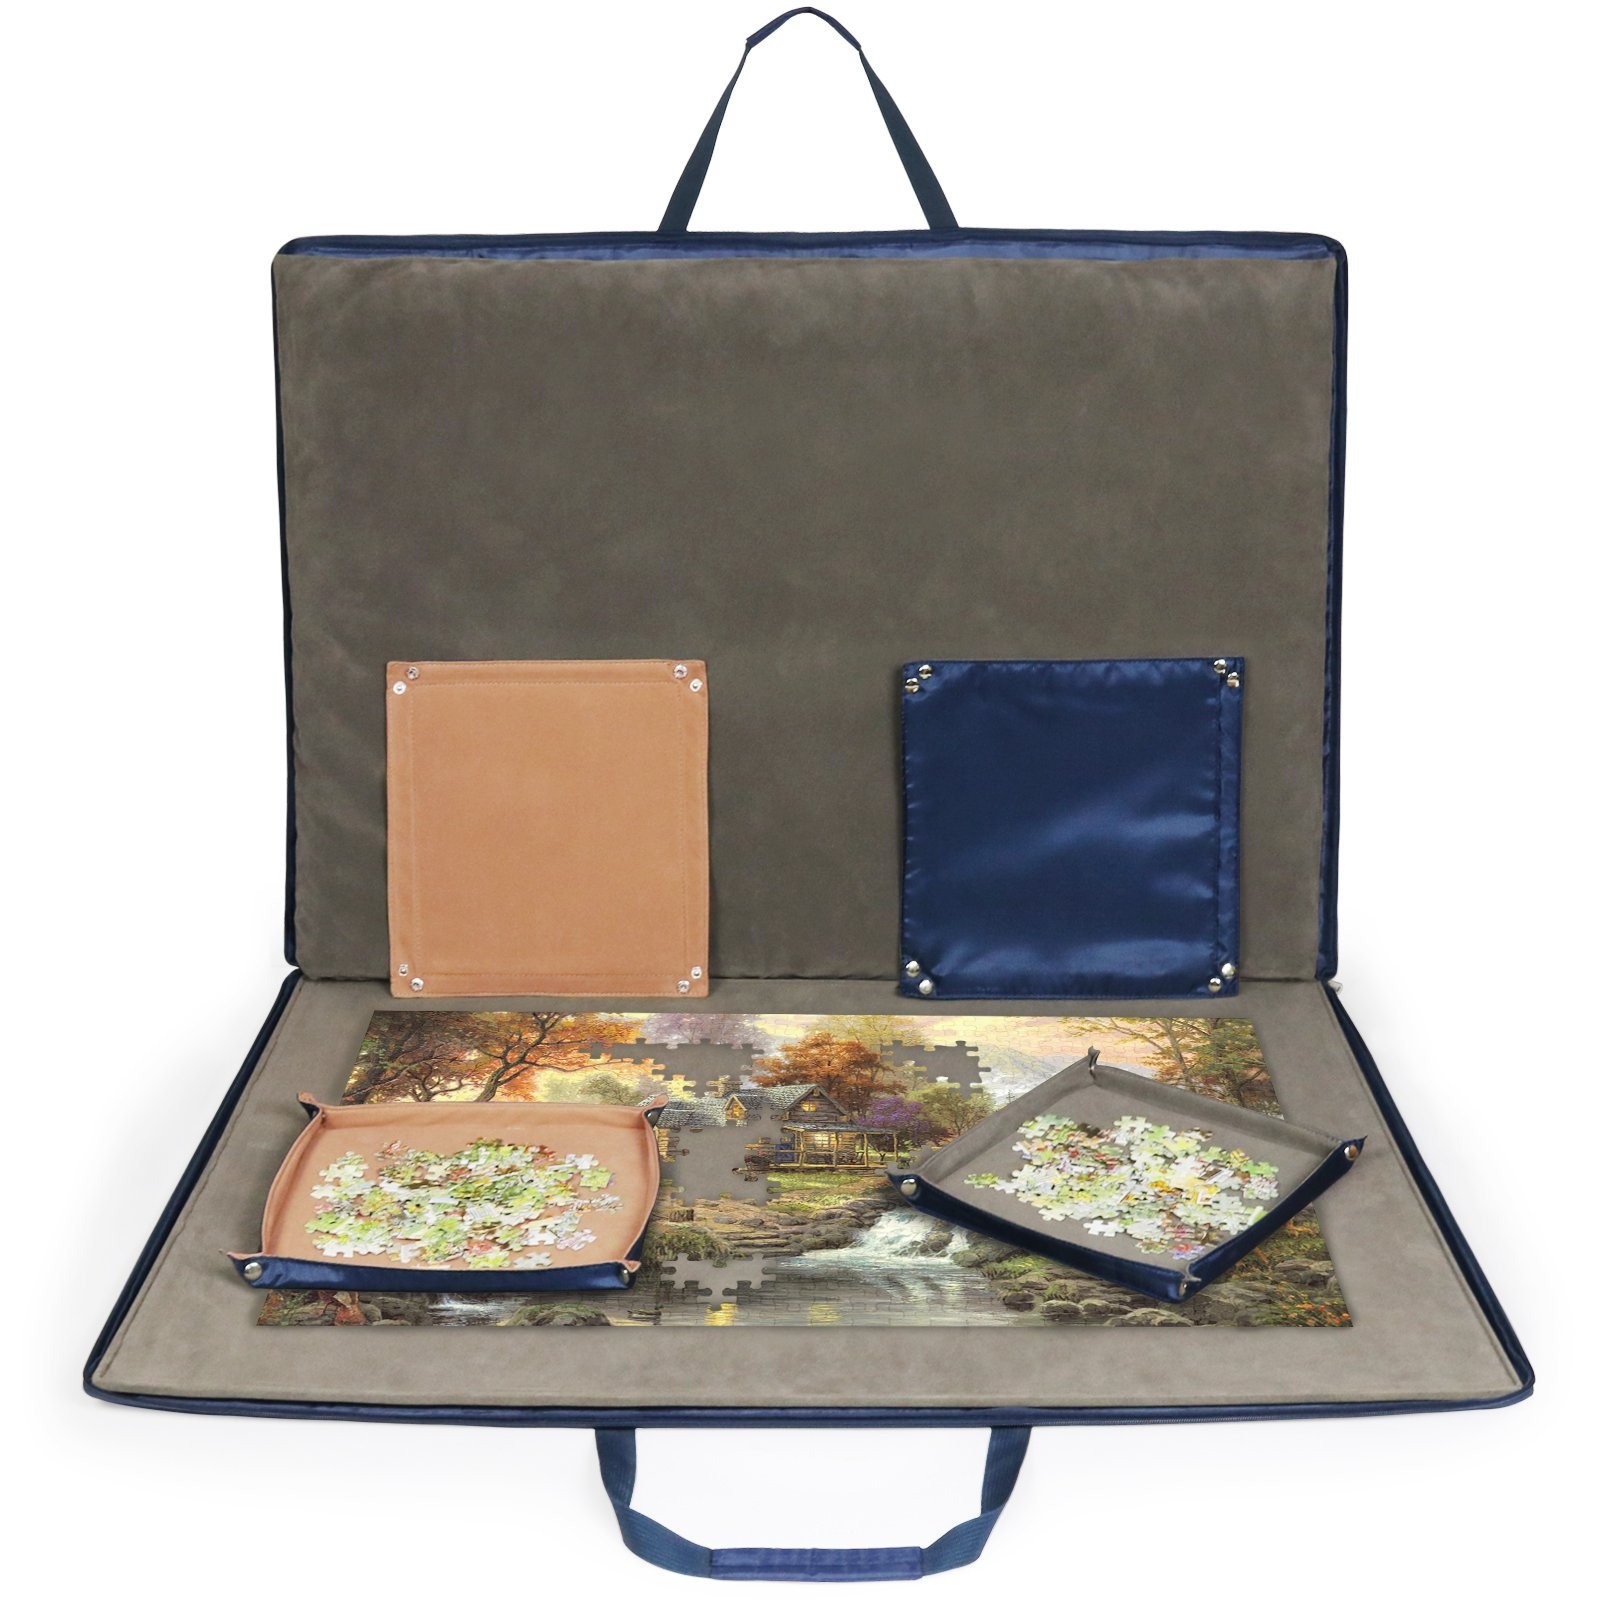 Lavievert Oxford Cloth Jigsaw Puzzle Case Puzzle Storage For Up To 1,500 Pieces - Blue